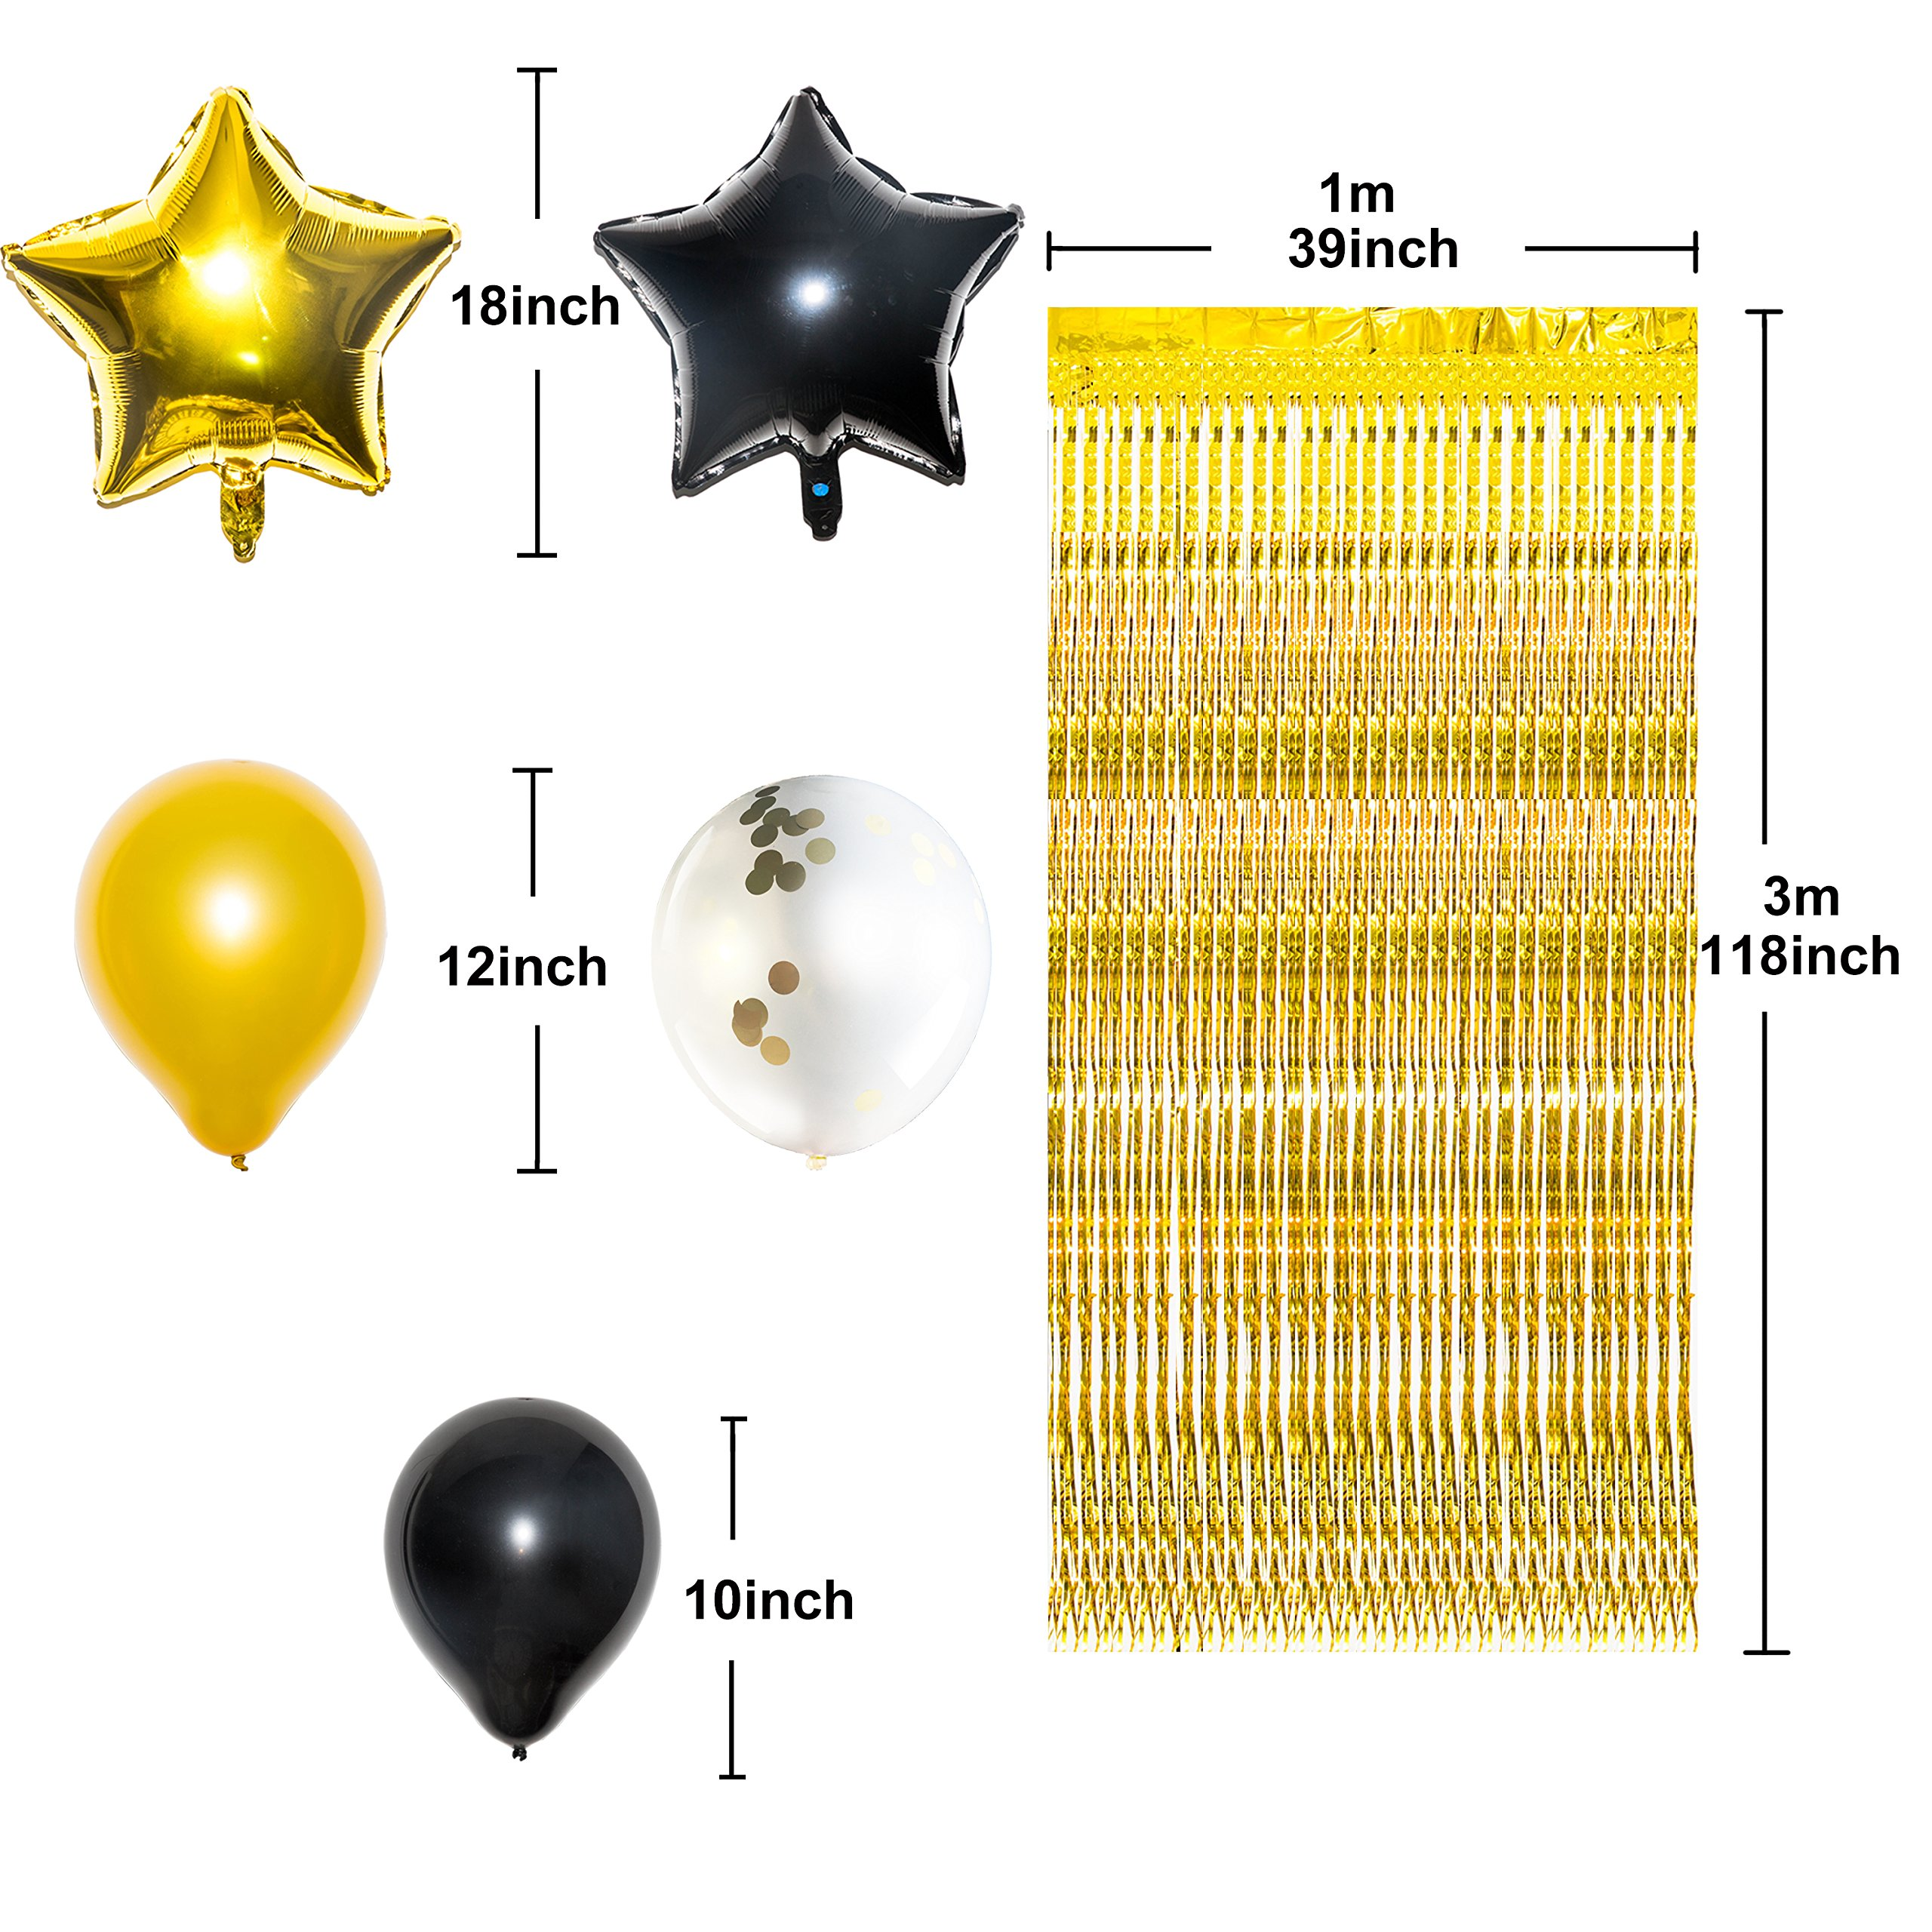 Gold 2019 Graduation Party Balloons Decorations with 10ft Metallic Gold Foil Fringe Curtain Bundle, Pack of 45, Graduation Party Supplies, Large Size, Latex Balloons, Star Balloons, Confetti Balloons by Youngever (Image #3)